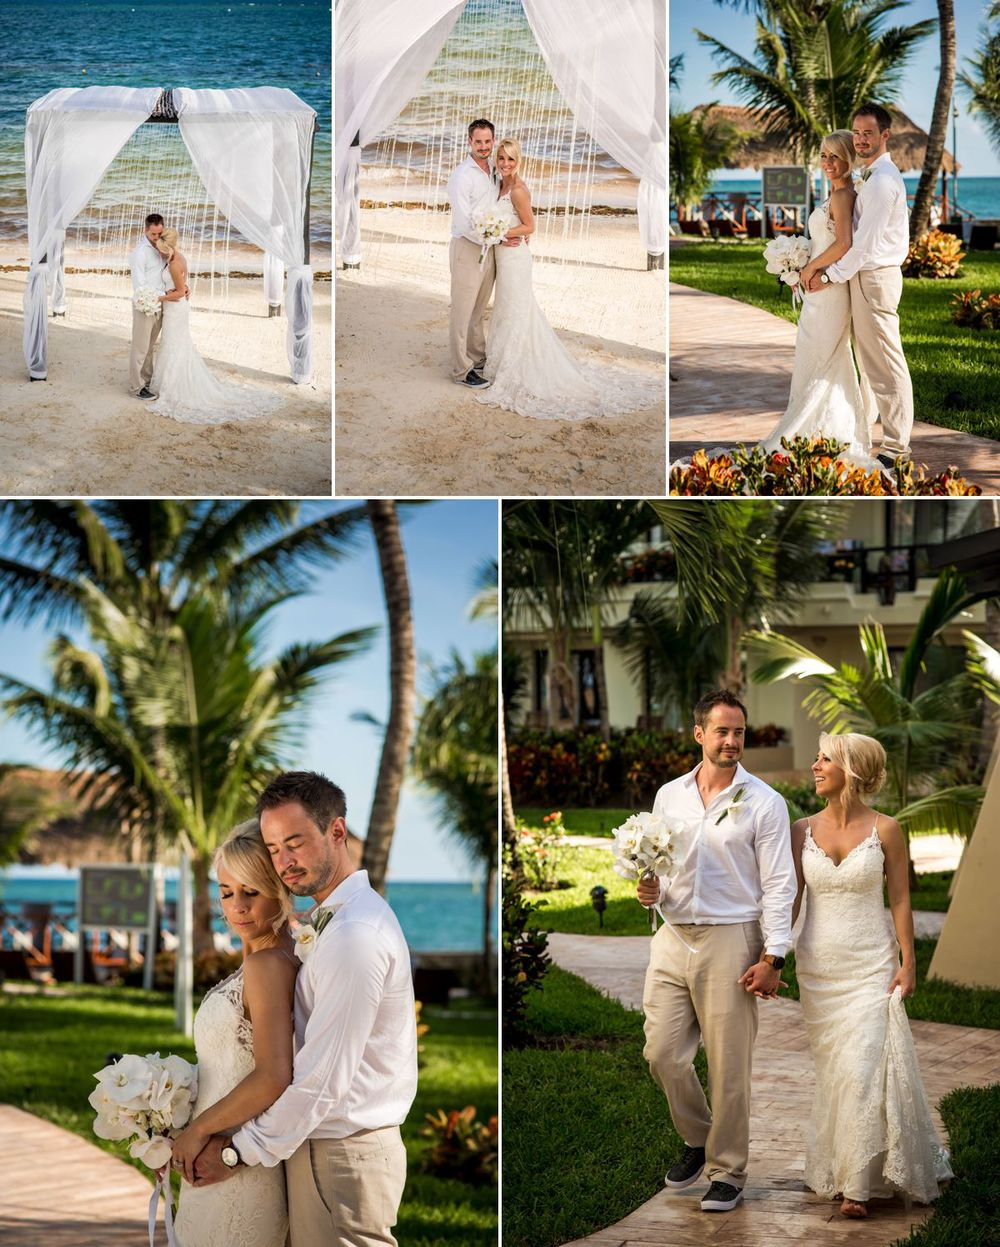 Azul-Beach-Resort-Aldabella-Photography-Destination-Wedding-Photographer 53.jpg